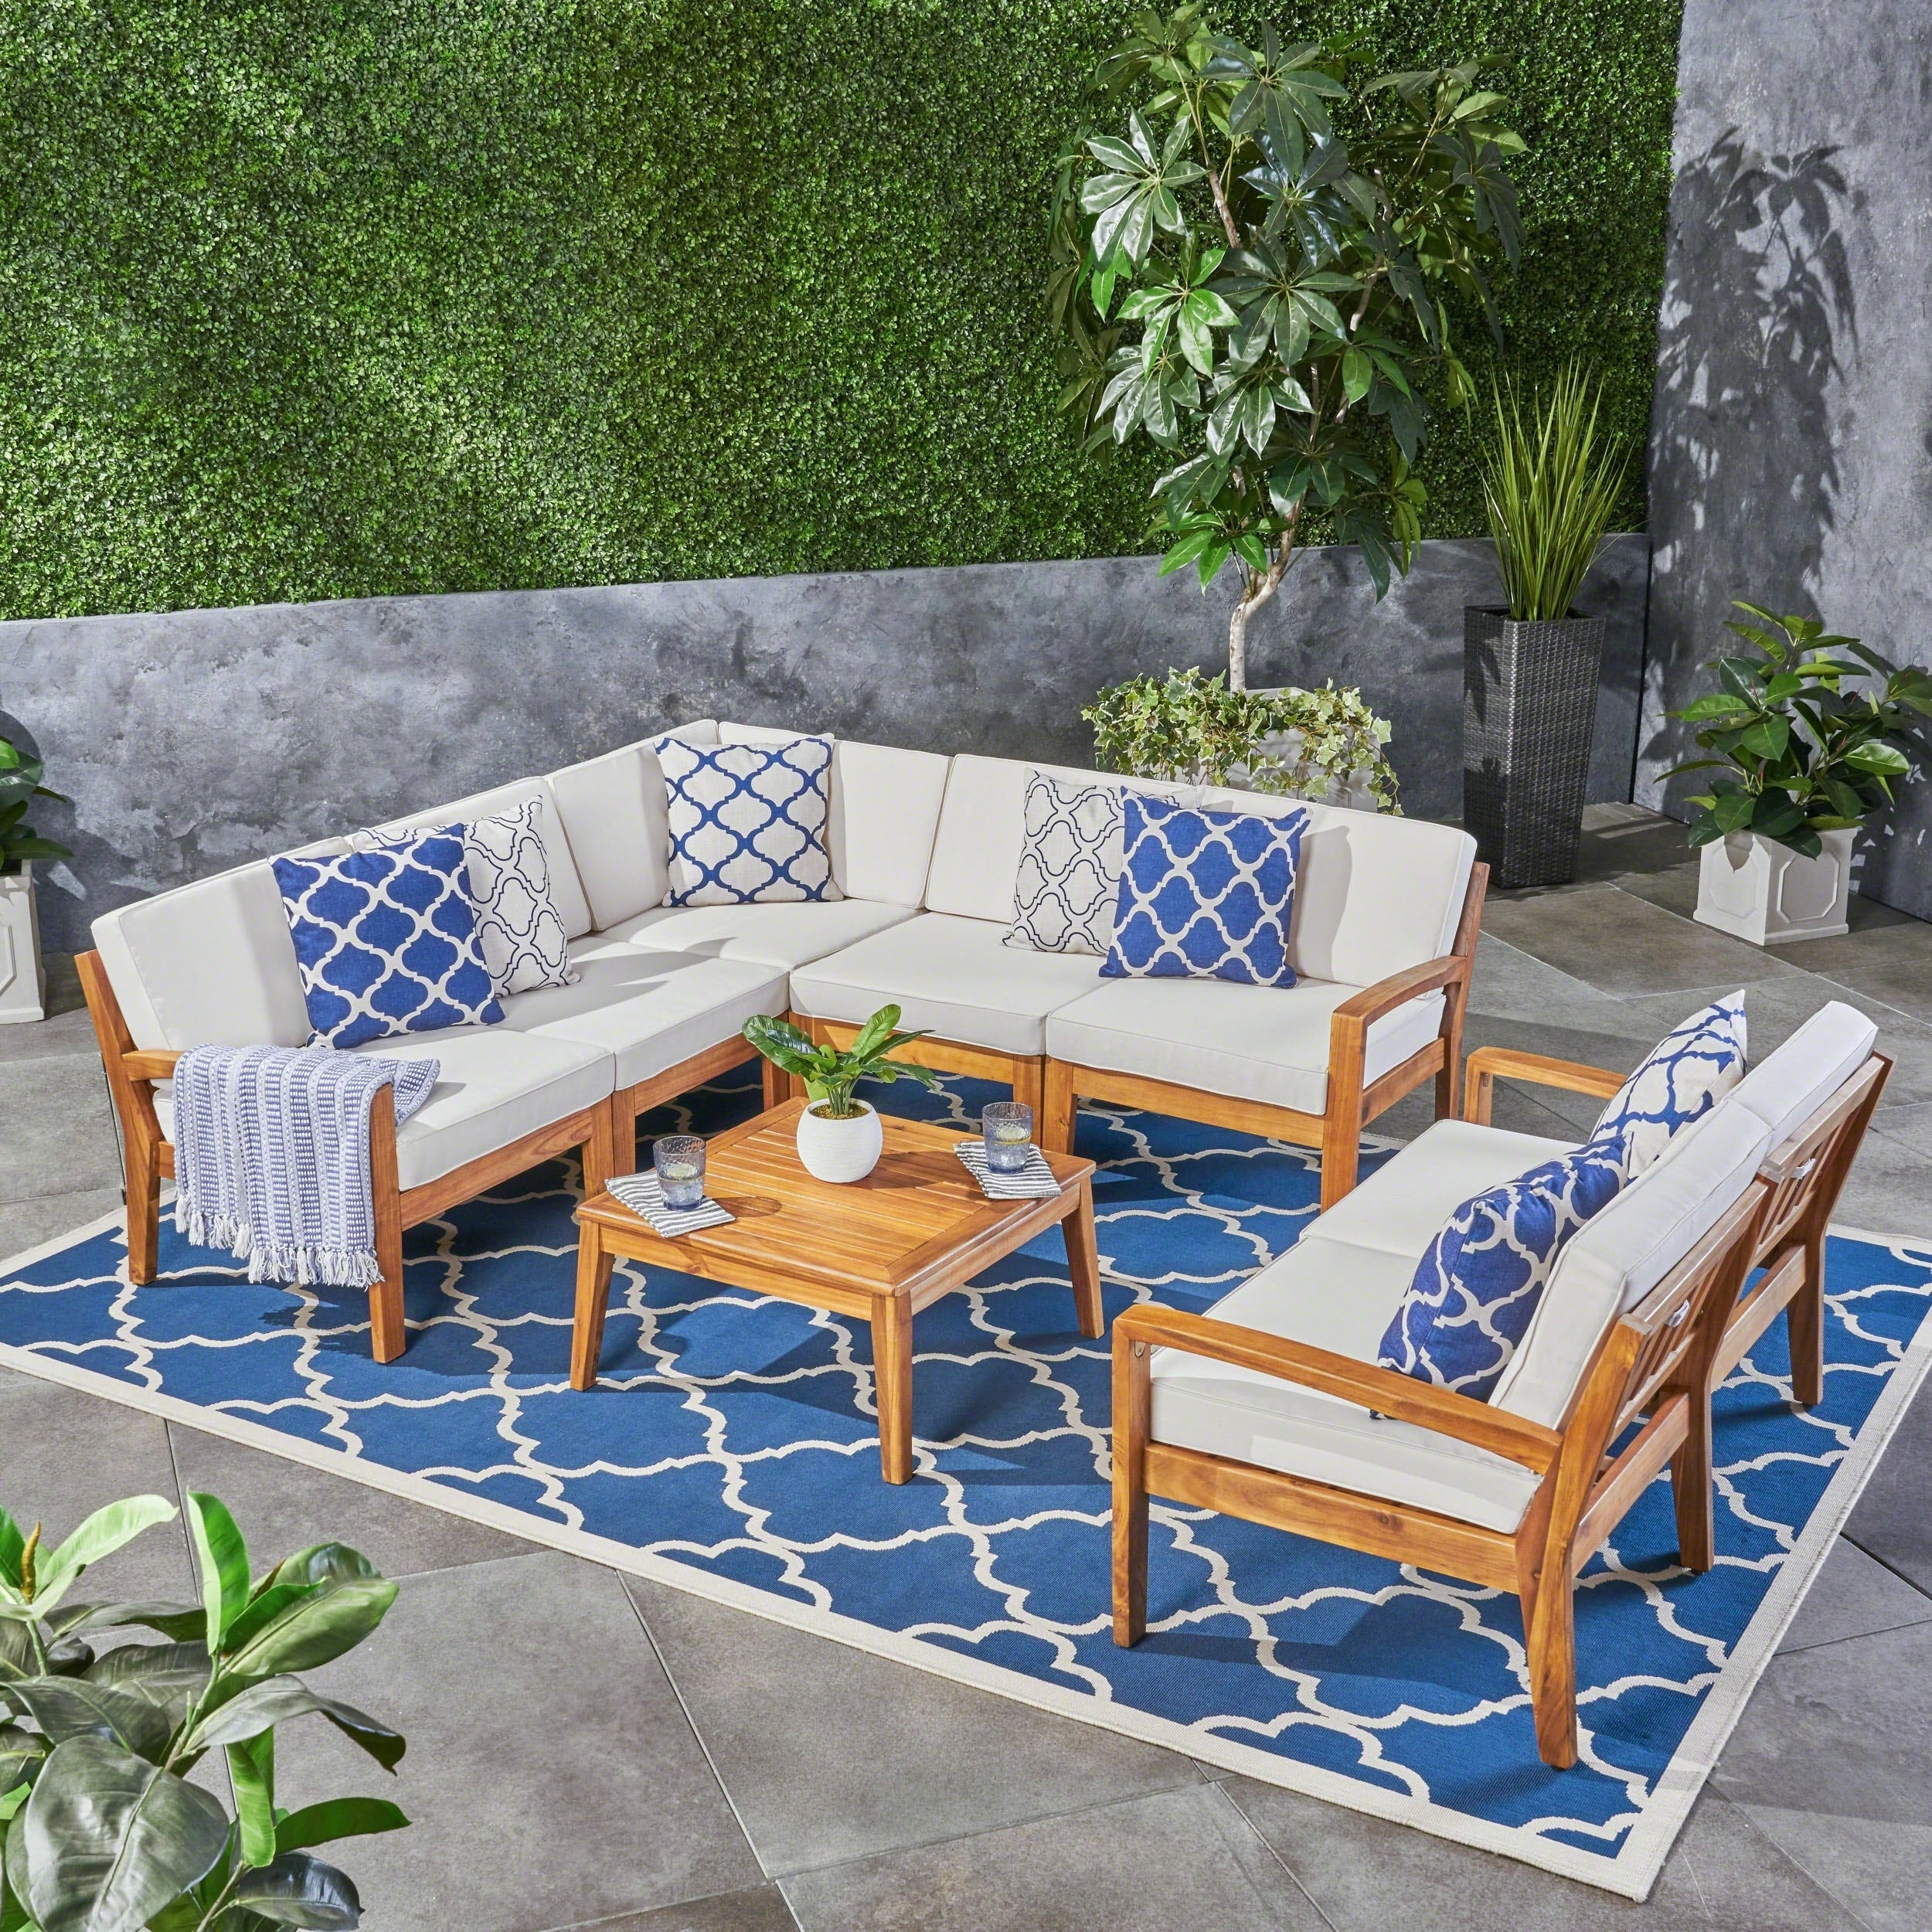 Shop Grenada Outdoor Acacia Wood Sectional Sofa Set With Cushions By